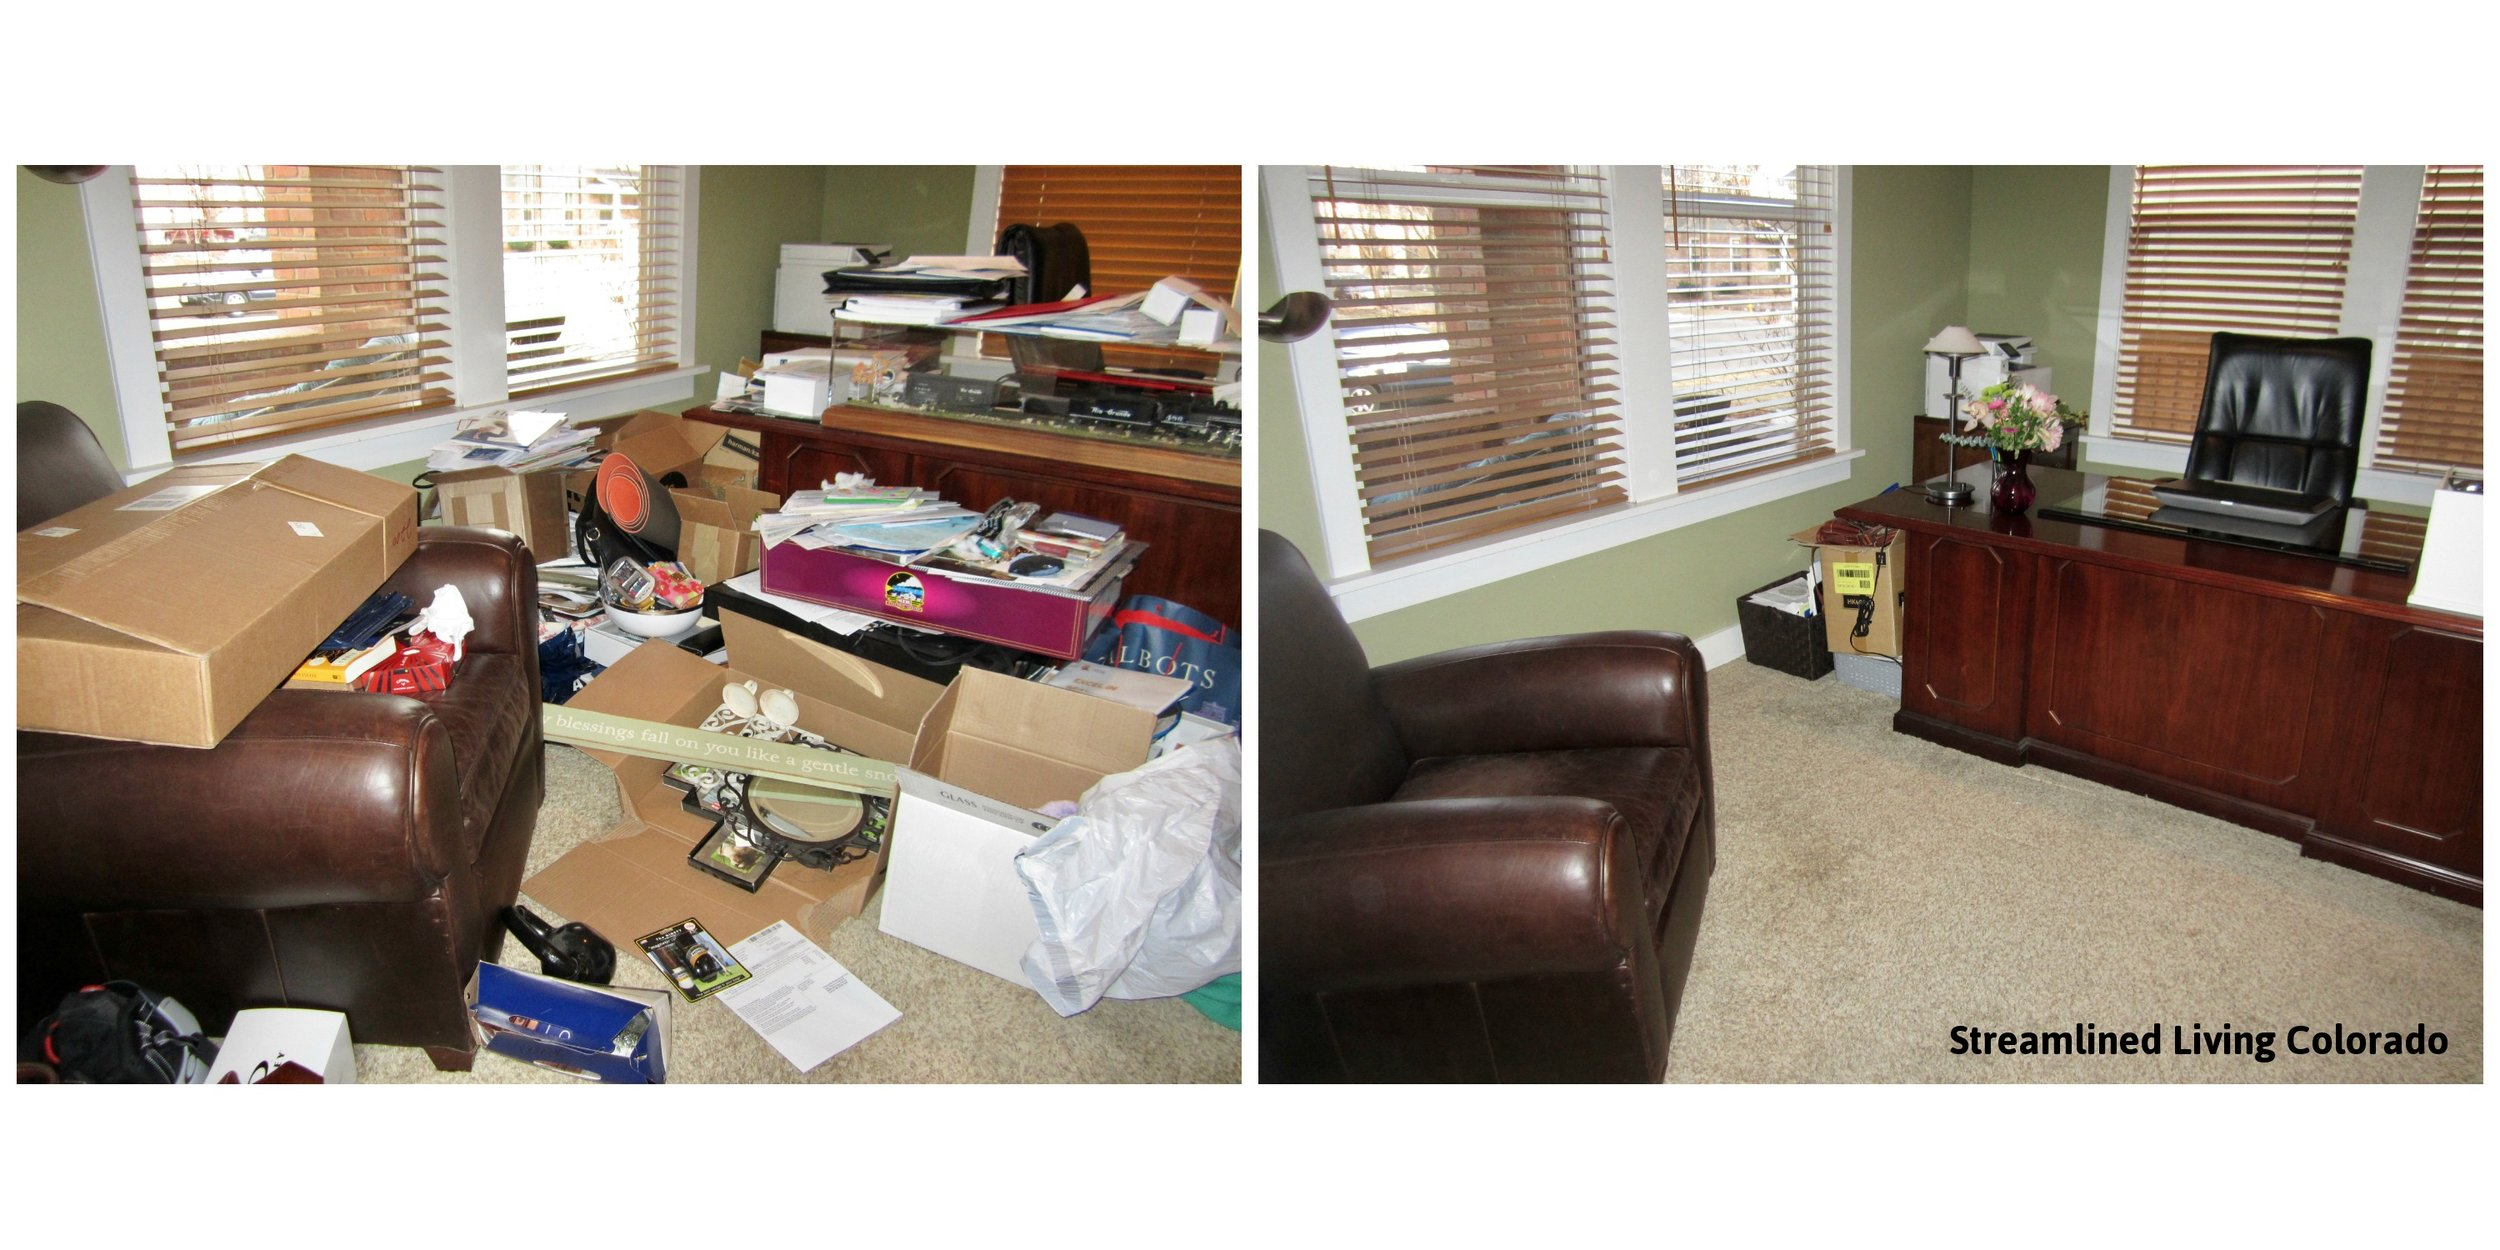 Chaotic home office signed Streamlined Living Colorado.jpg